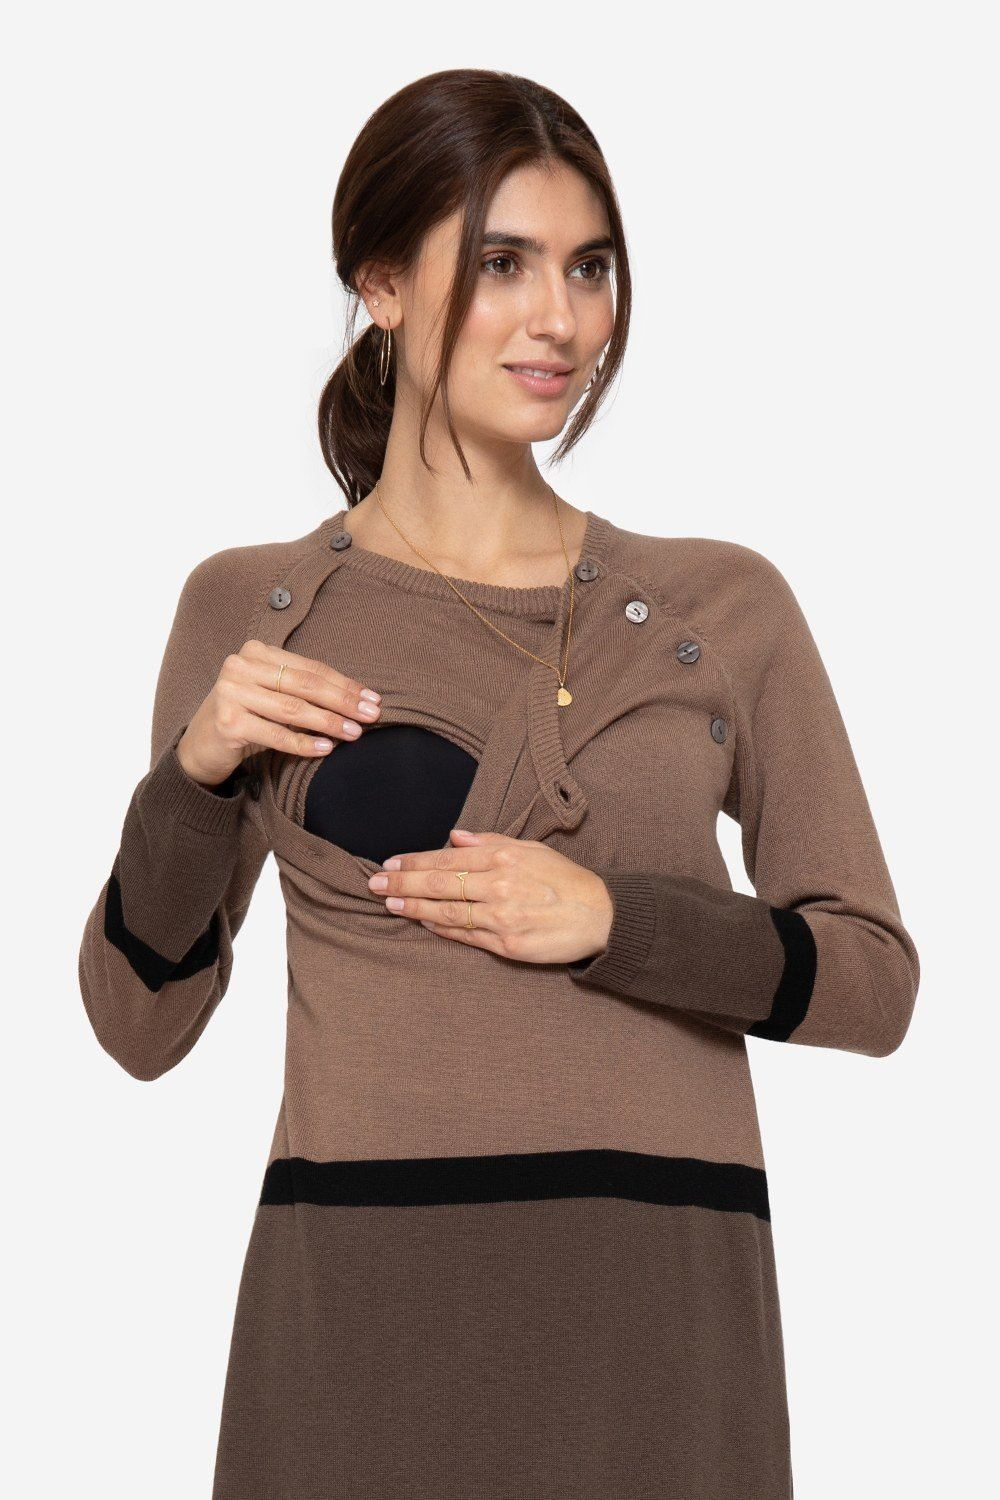 Brown striped nursing dress with dark brown skirt and buttons, with nursing access